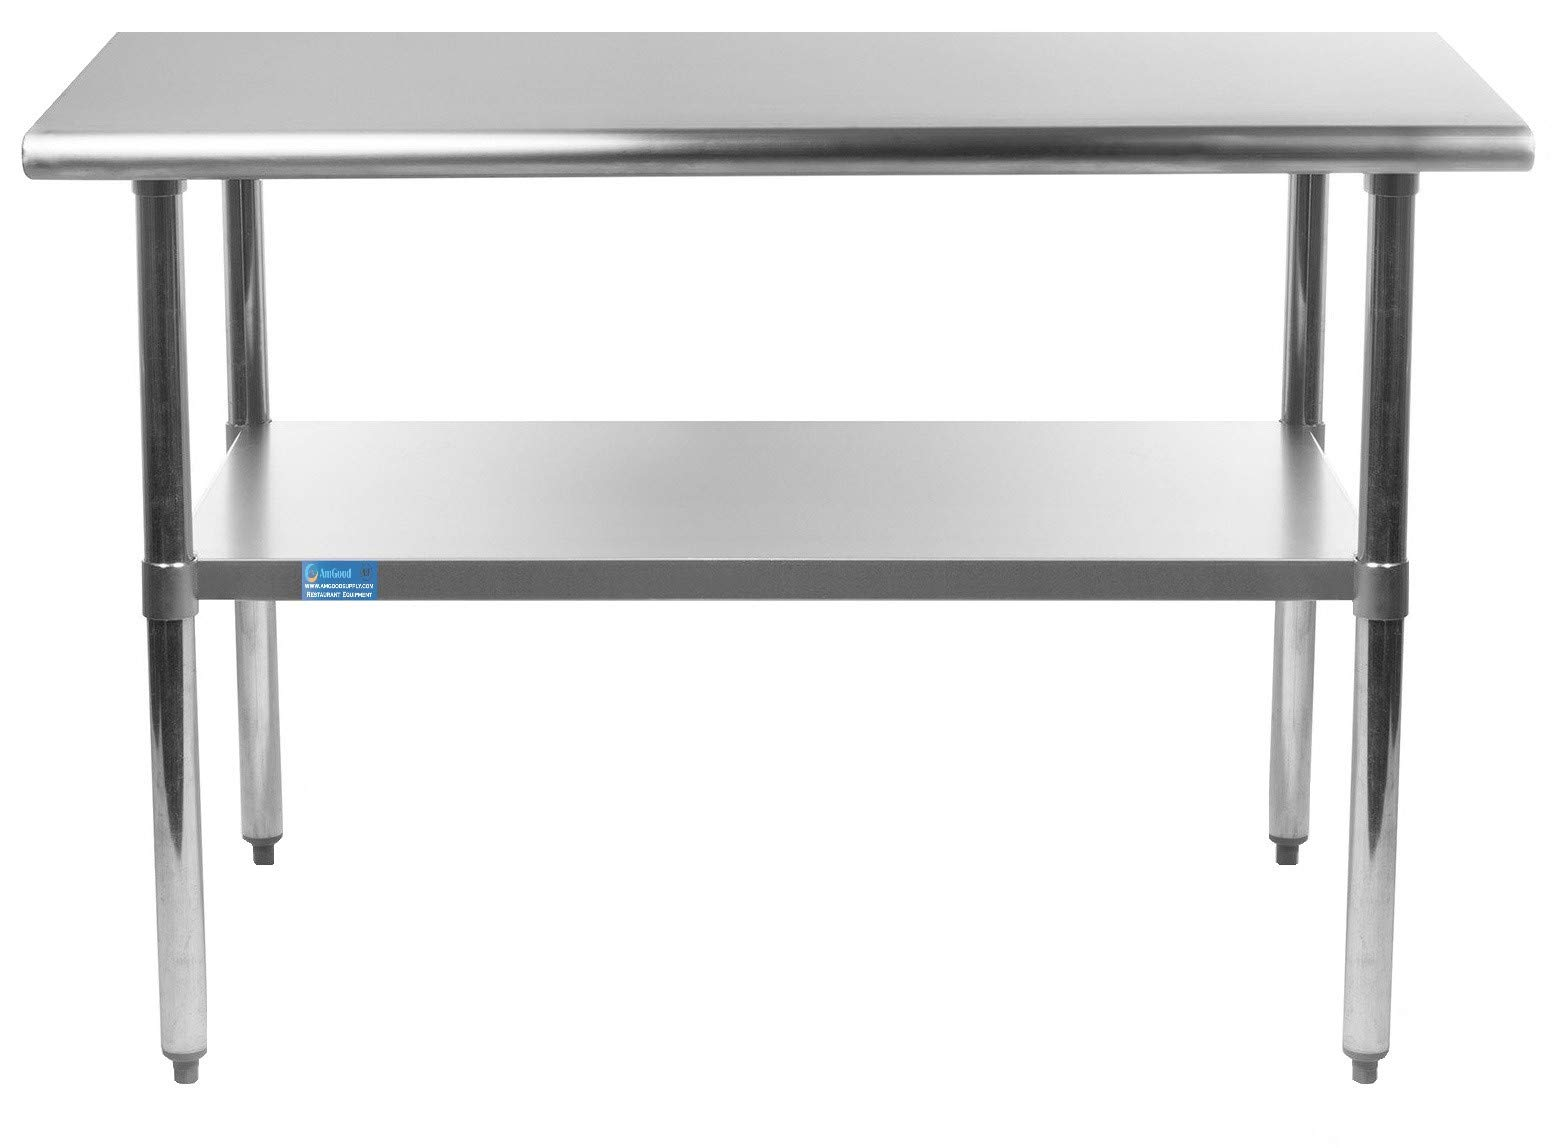 30'' X 36'' Stainless Steel Work Table with Undershelf | NSF Certified | Laundry Garage Utility Bench | Kitchen Island Food Prep by AmGood